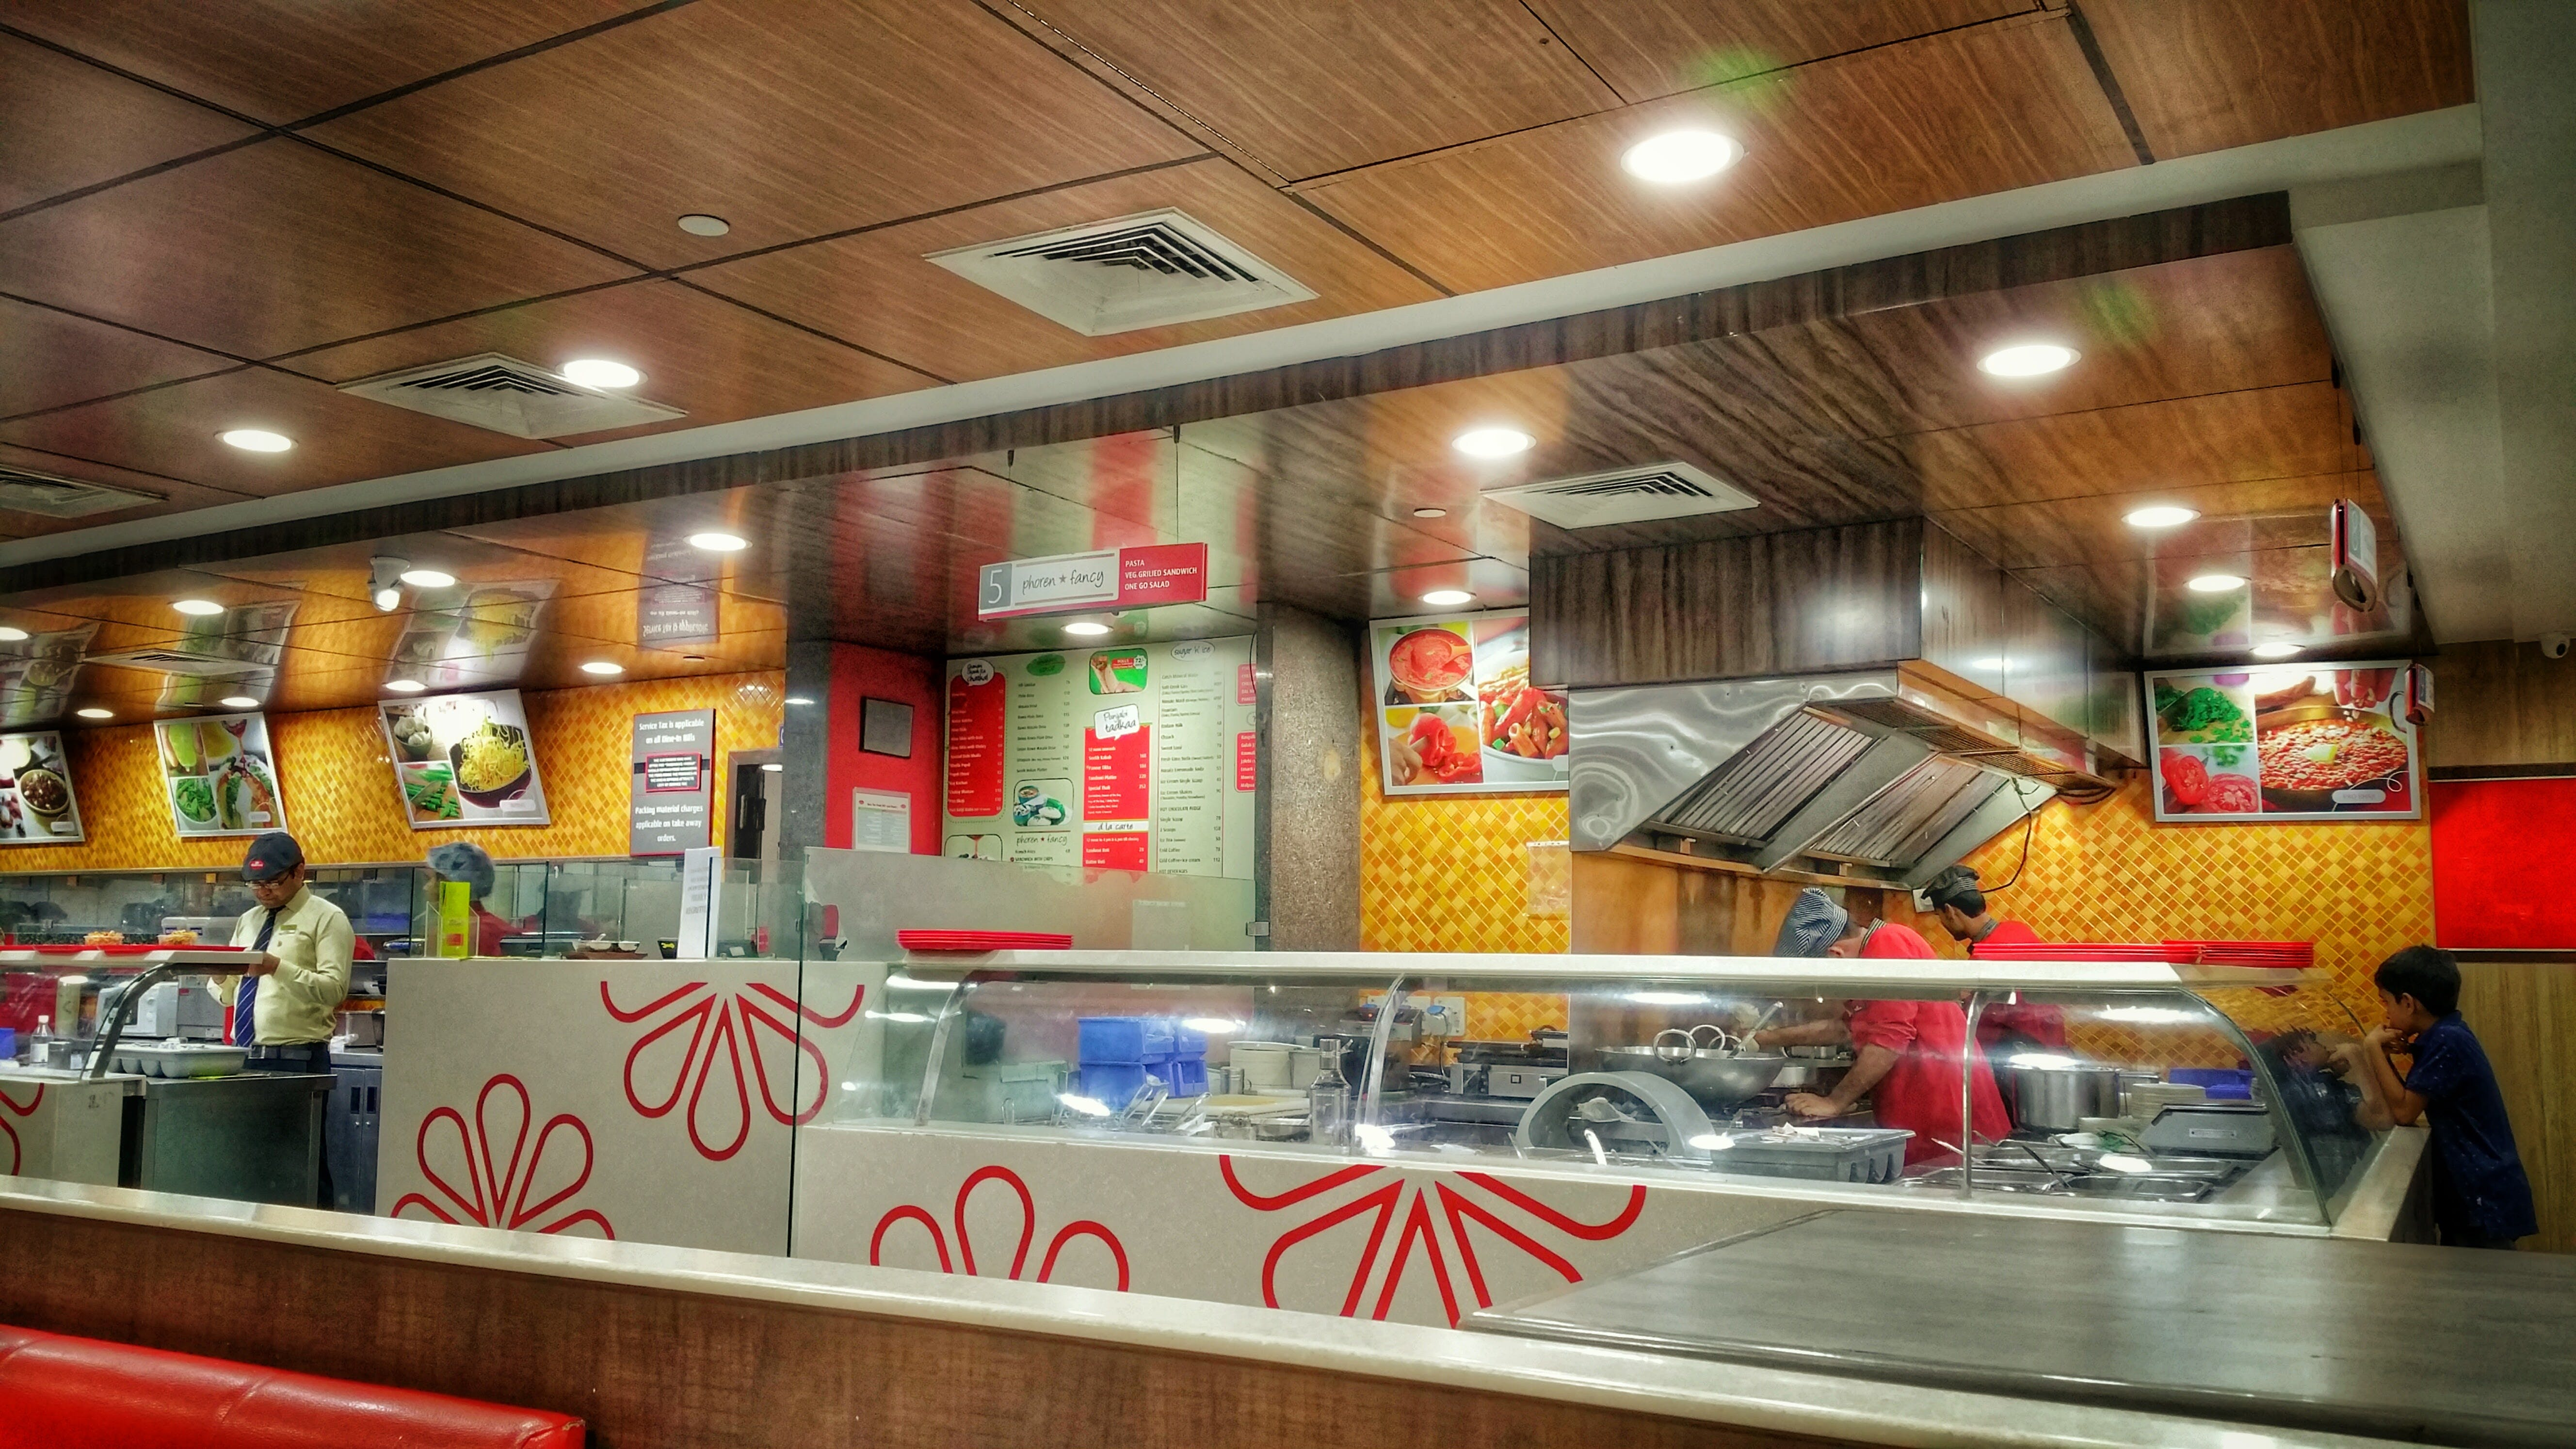 Free stock photo of breakfast, business, business establishment, cafeteria